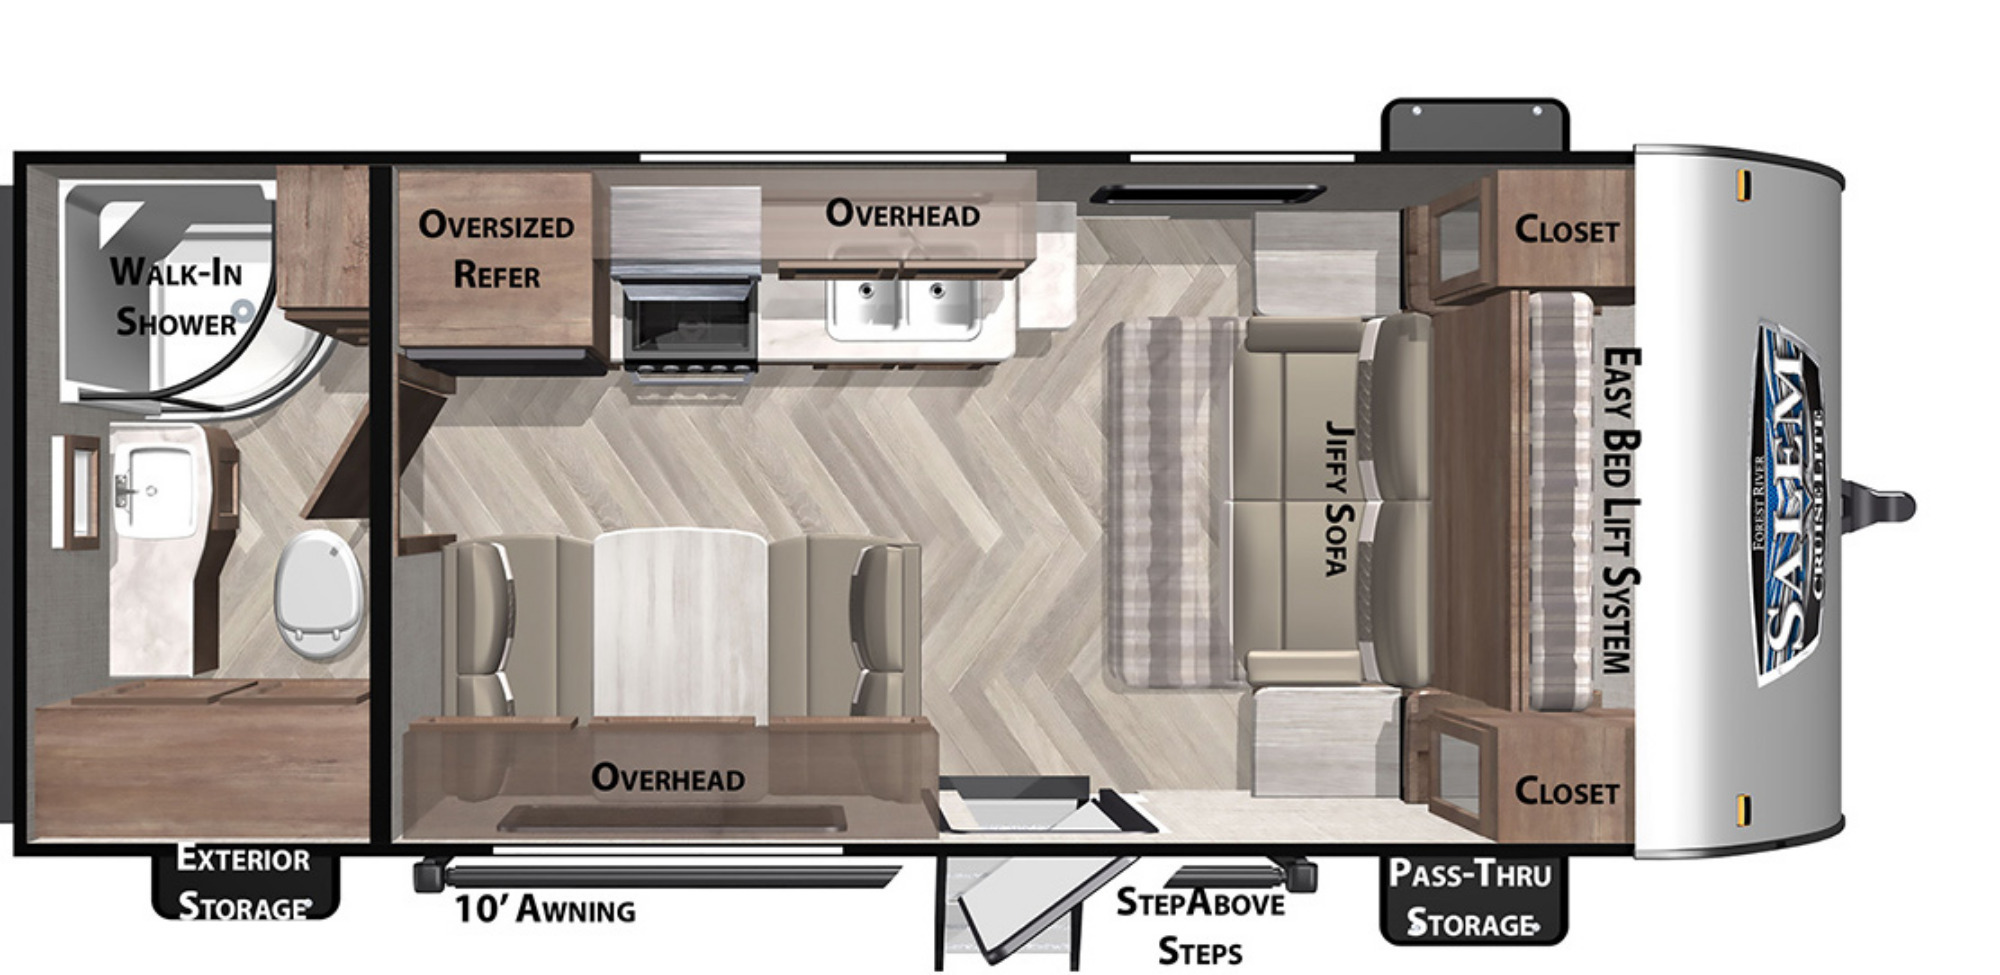 View Floor Plan for 2022 FOREST RIVER SALEM CRUISE LITE 171RBXL